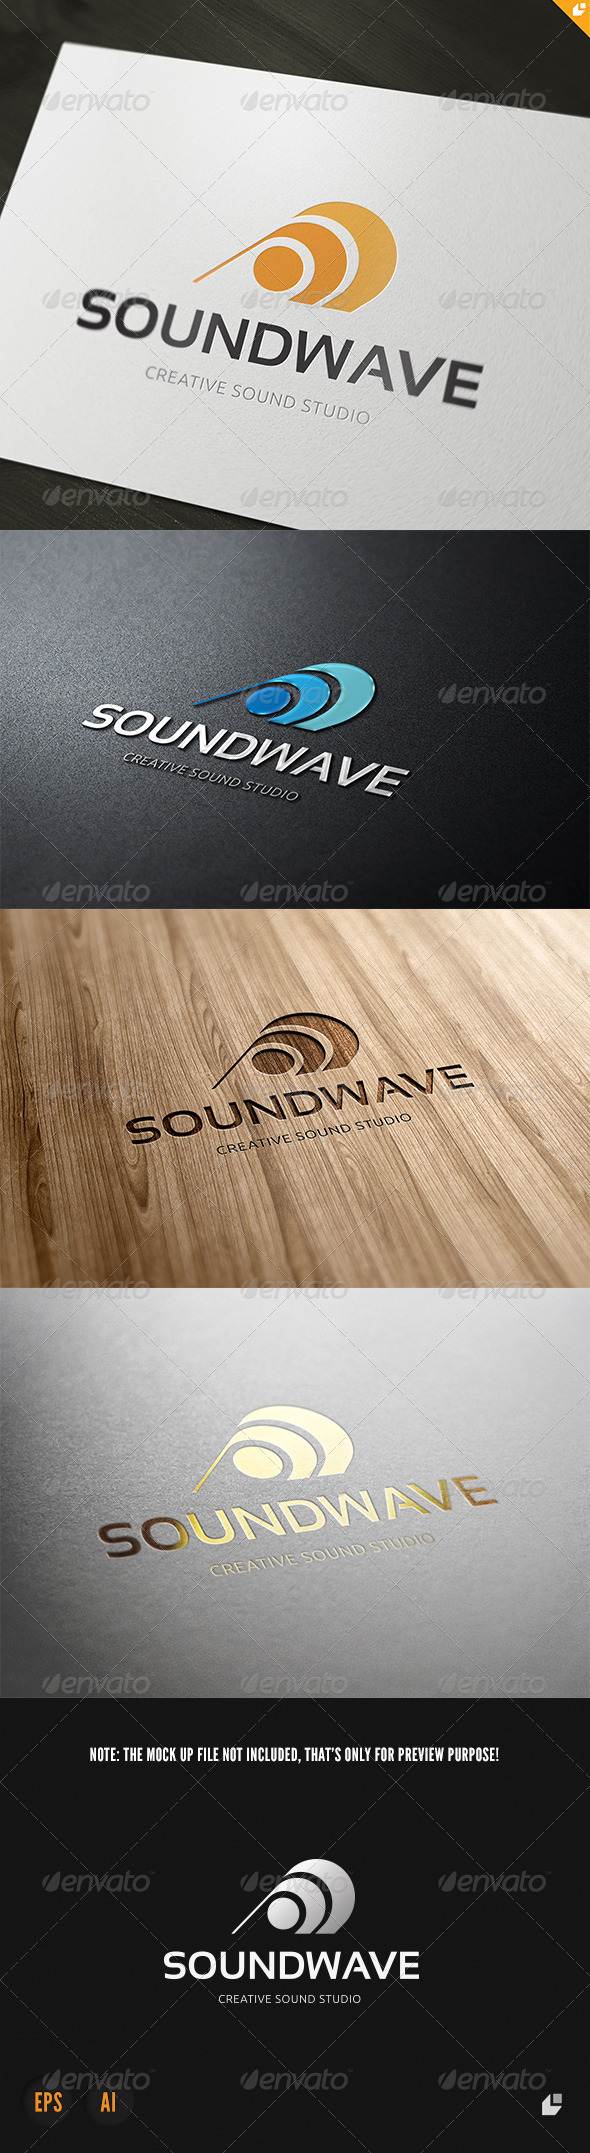 Sound Wave Logo - Vector Abstract